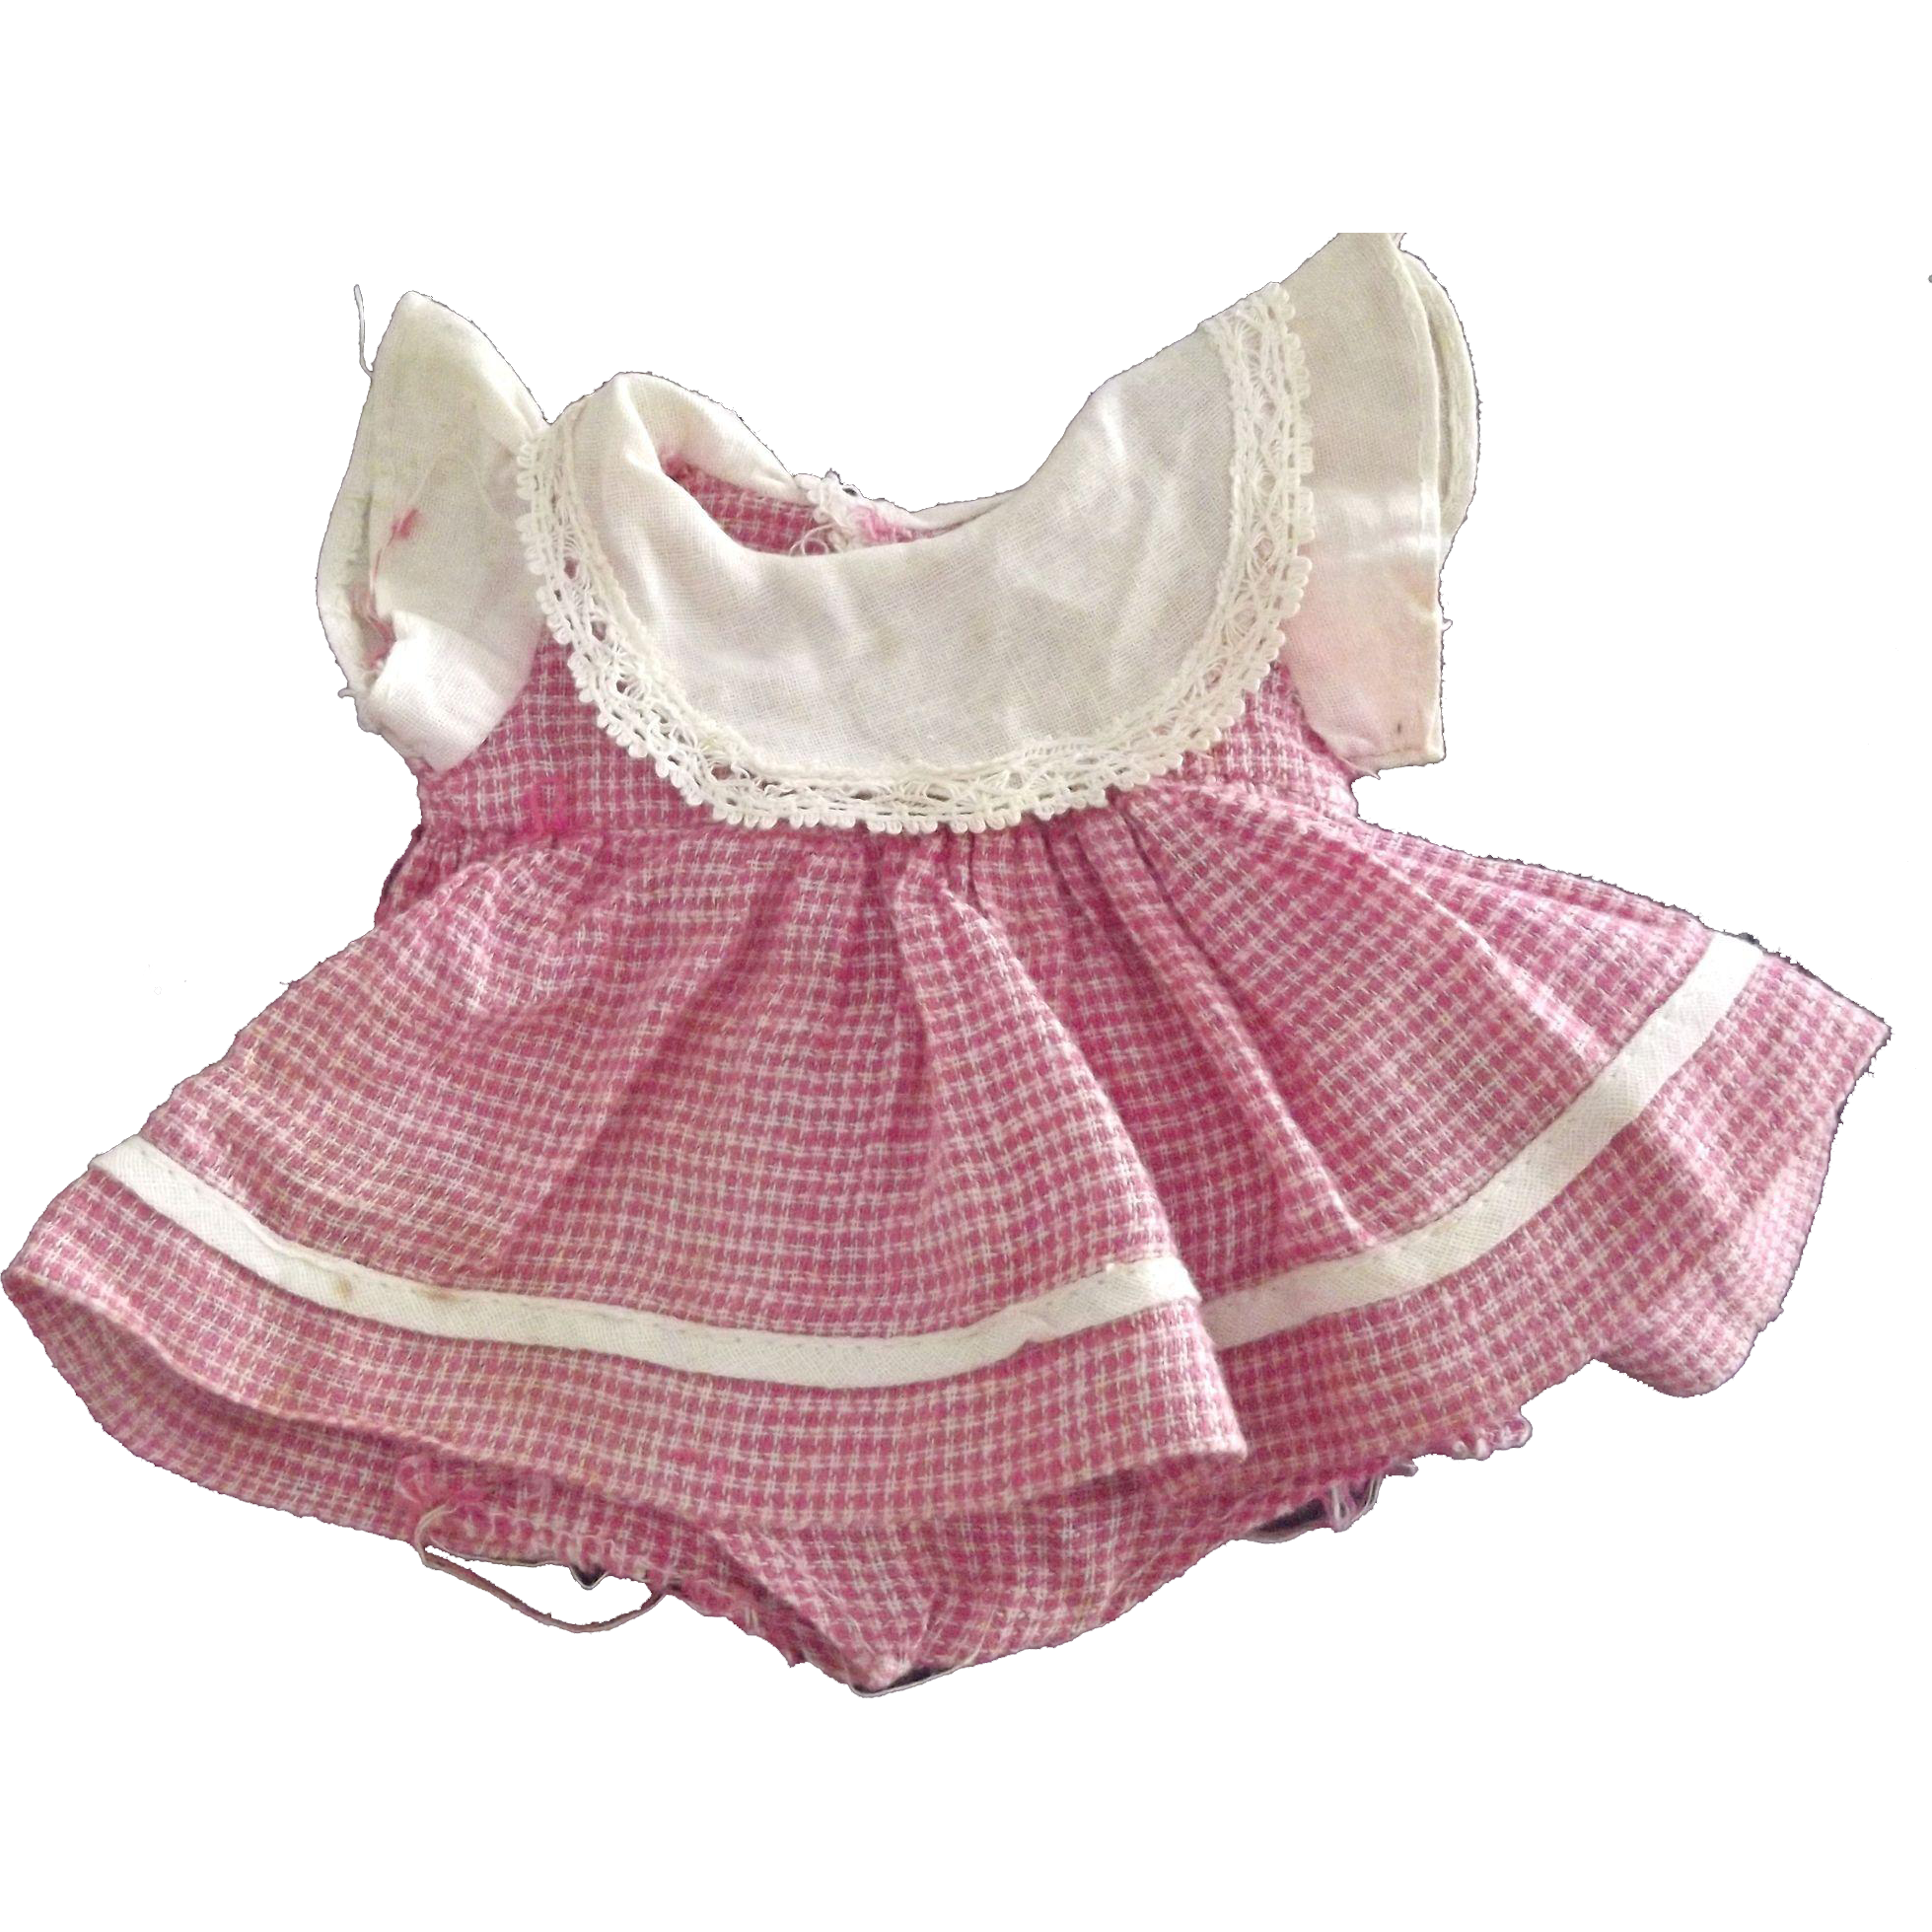 Checked Dress With White Collar For 50's Doll